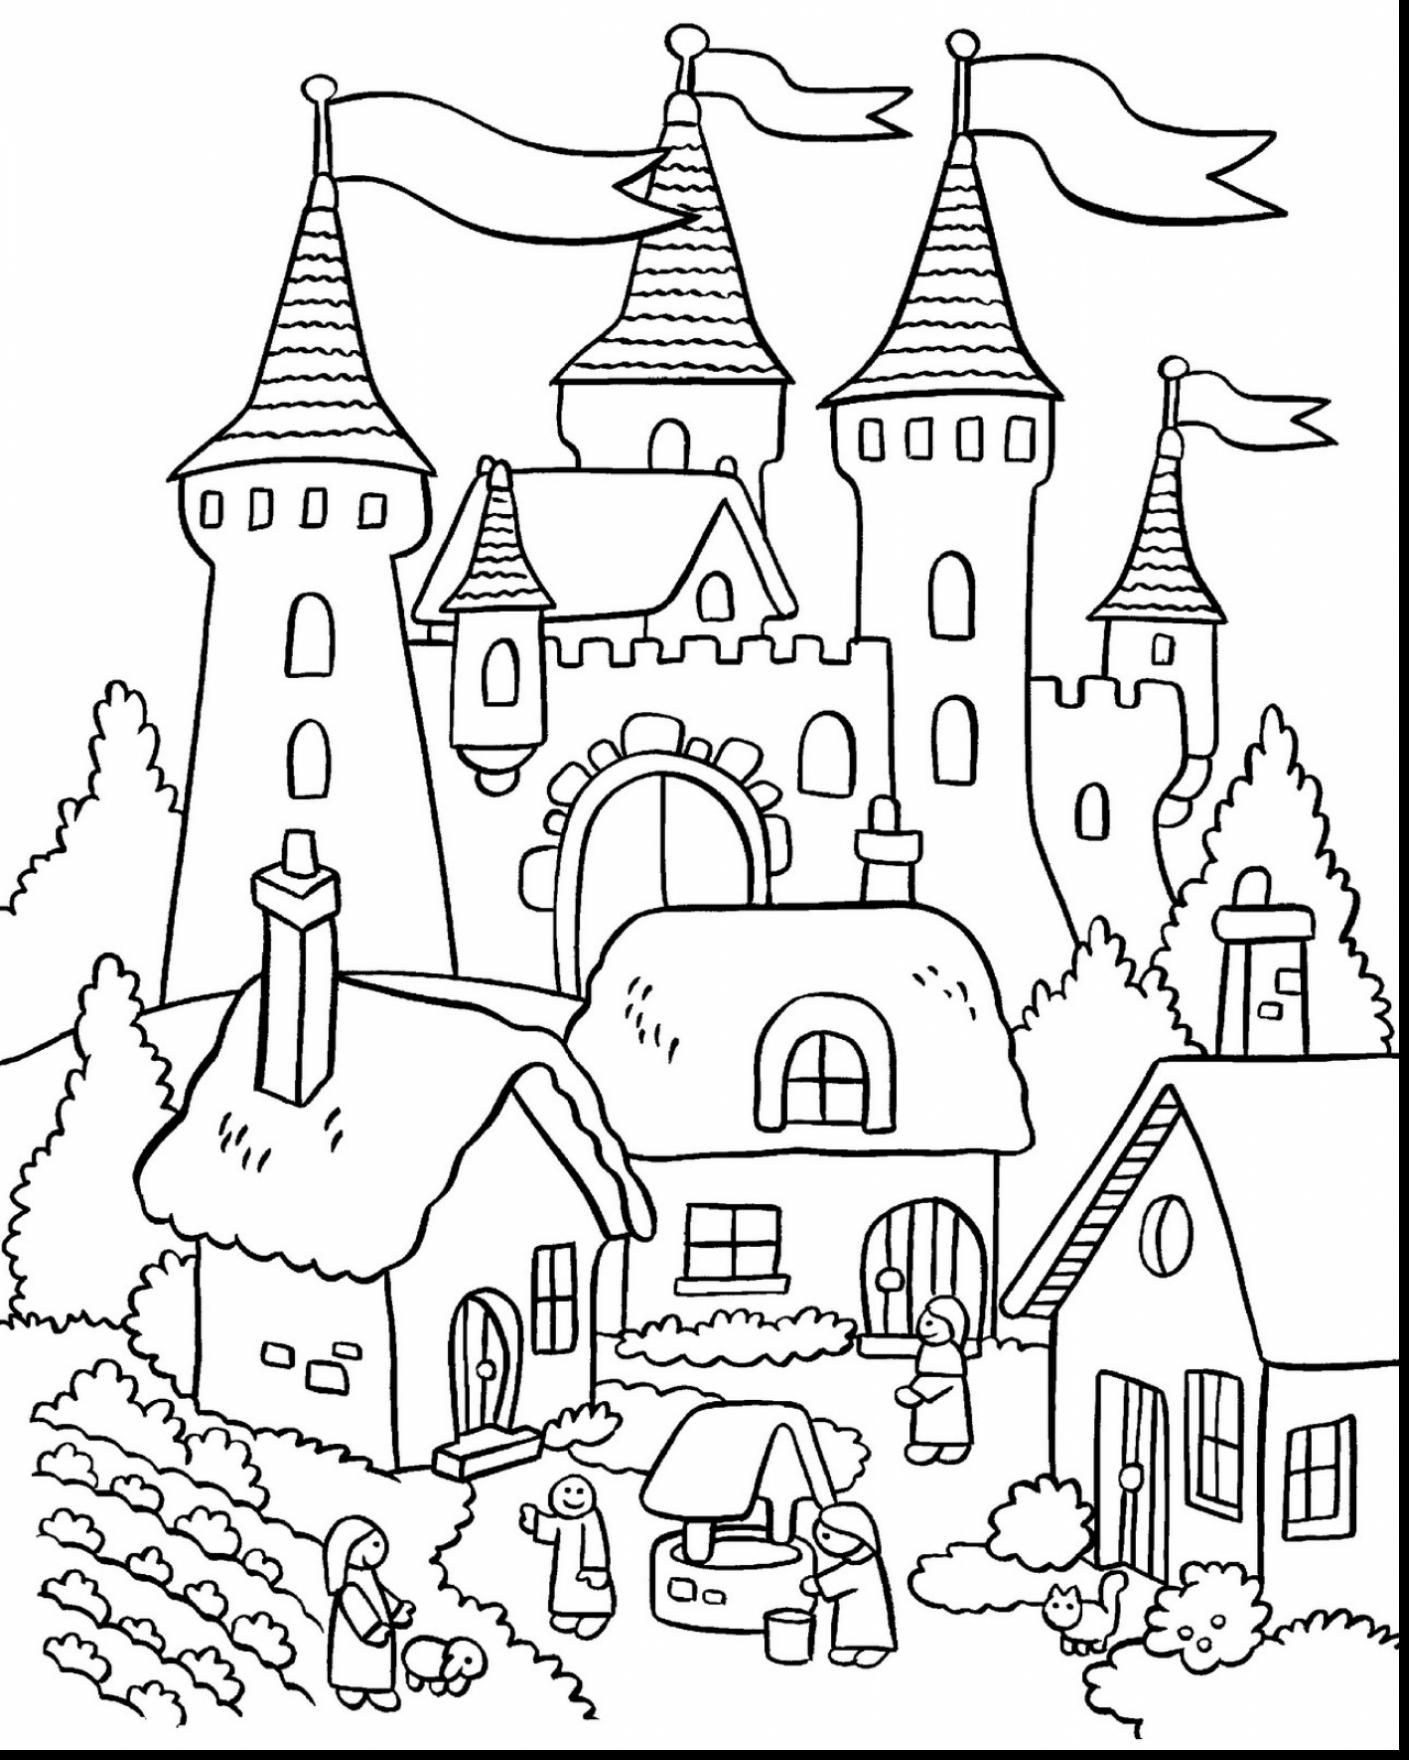 Magnificent Castle coloring #18, Download drawings